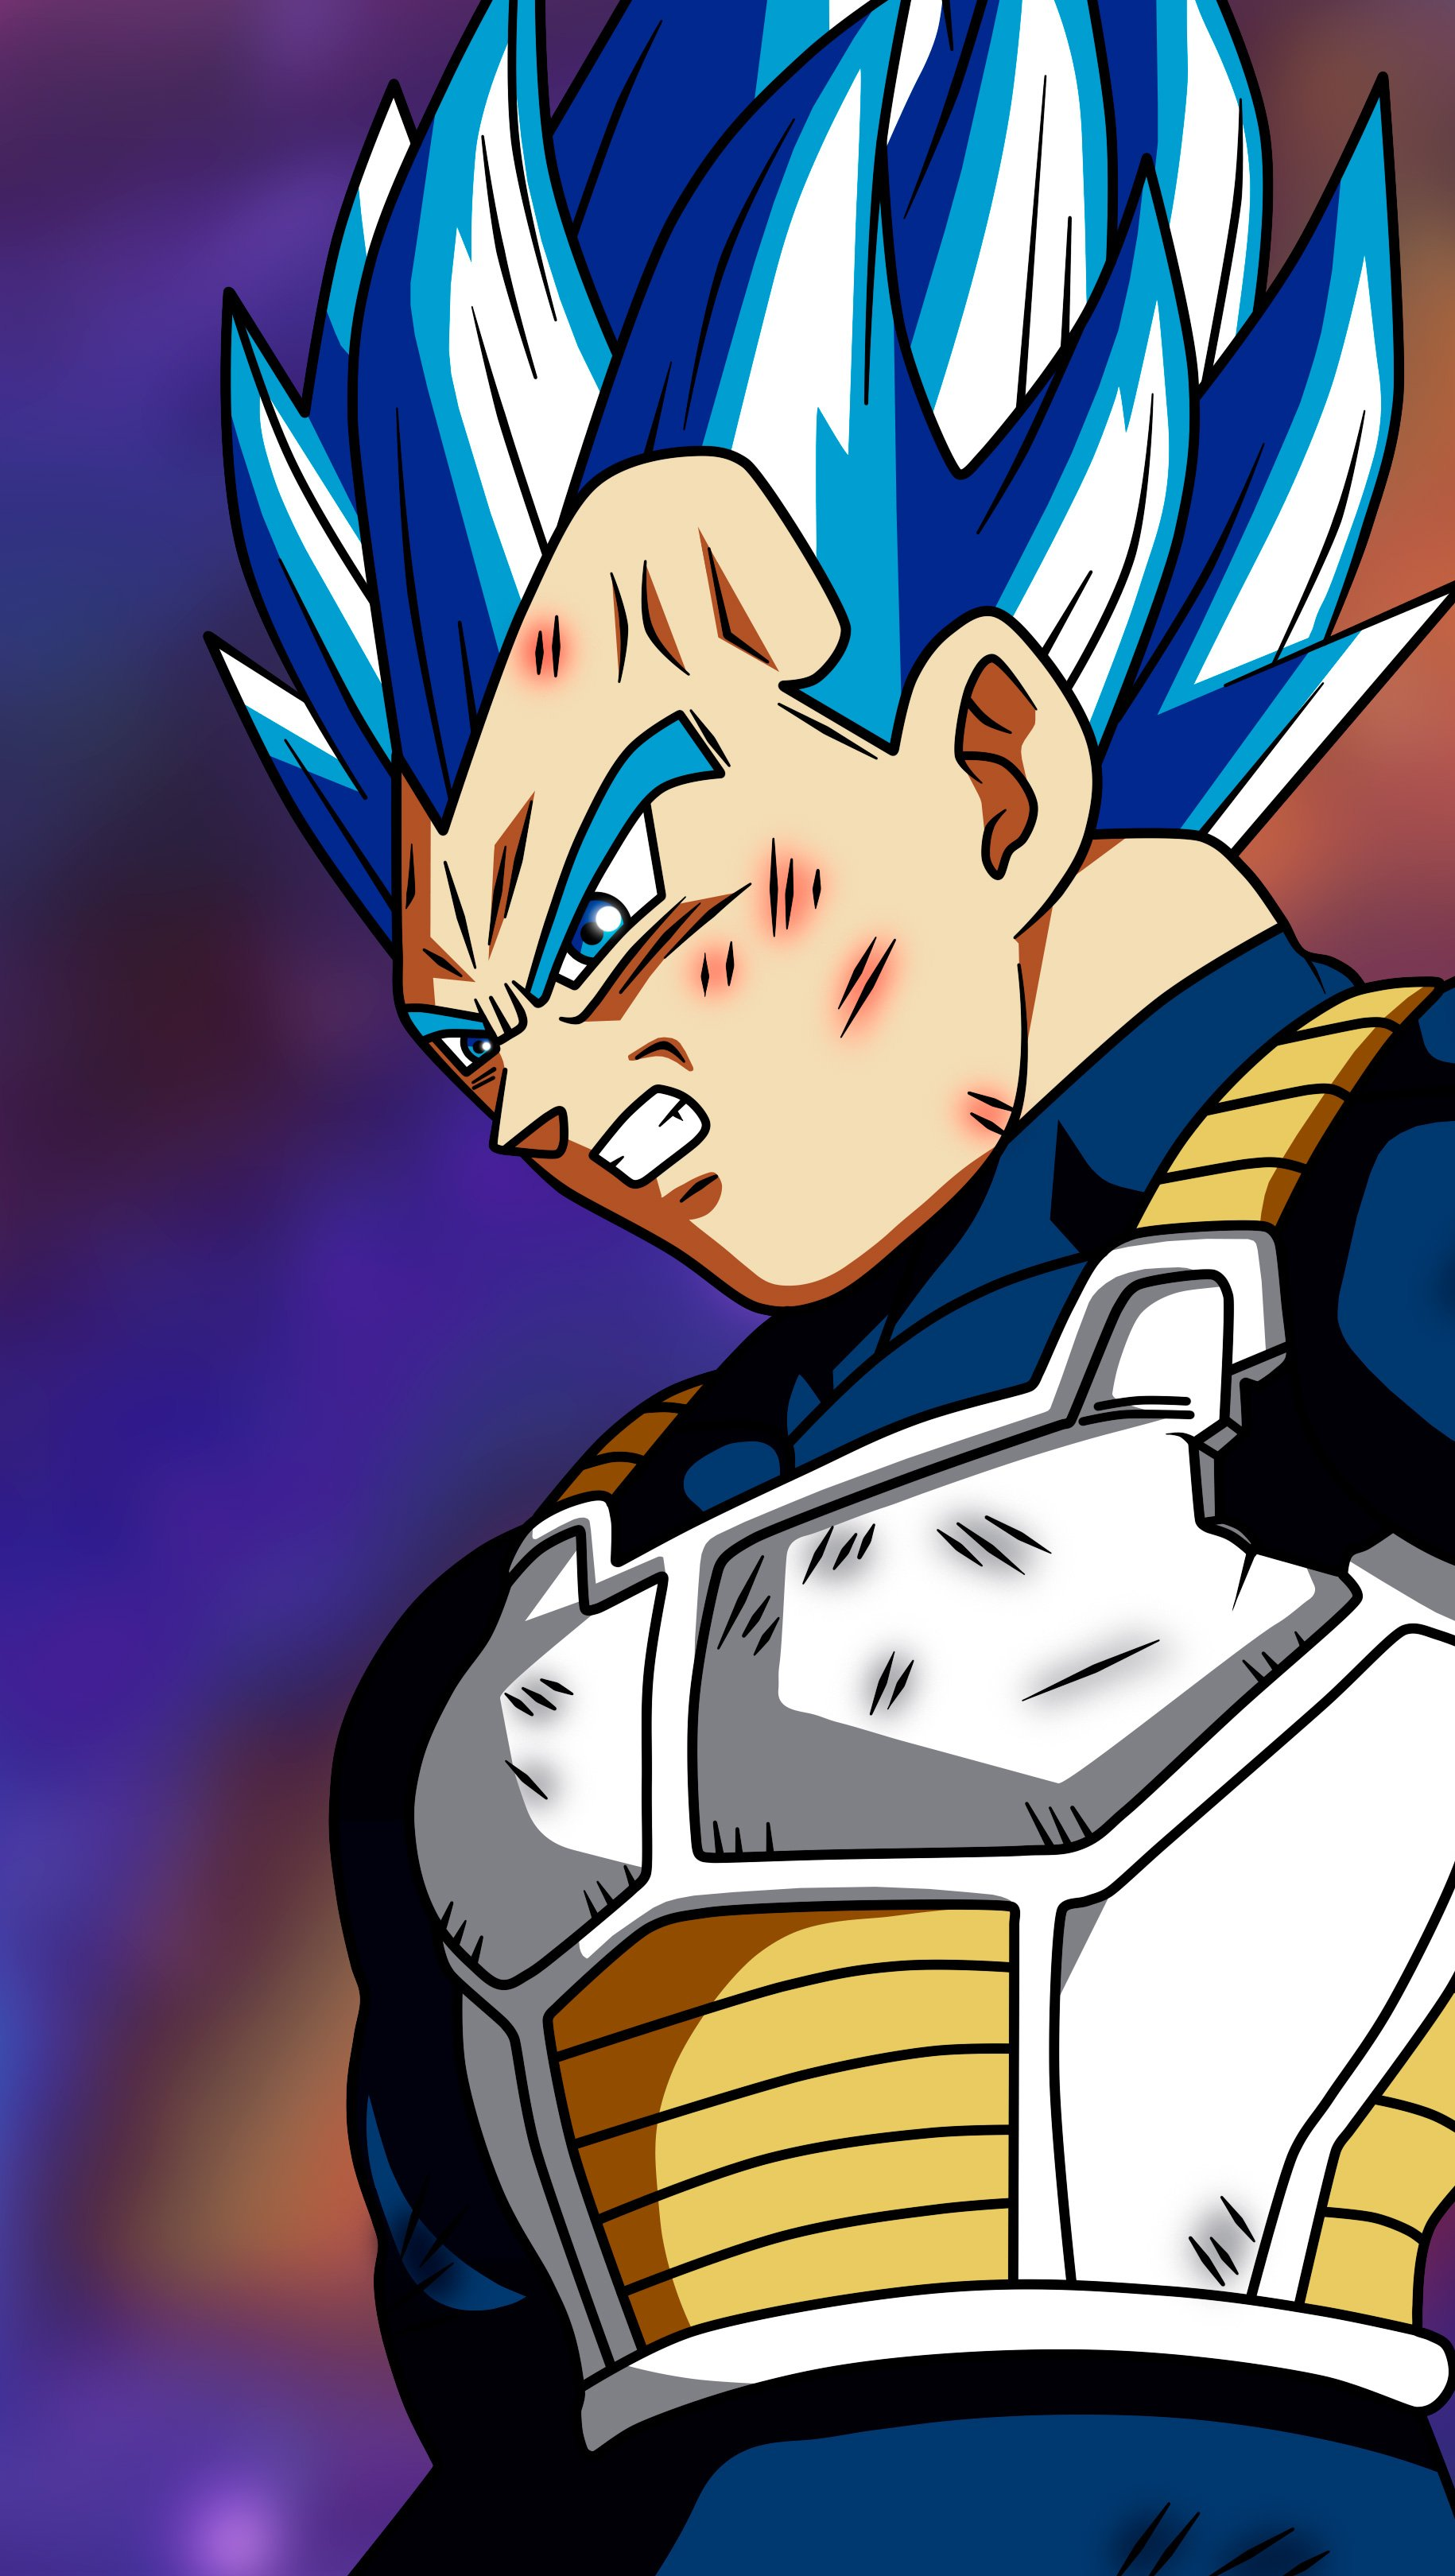 Fondos de pantalla Anime Vegeta Super Saiyan Blue Dragon Ball Super Vertical